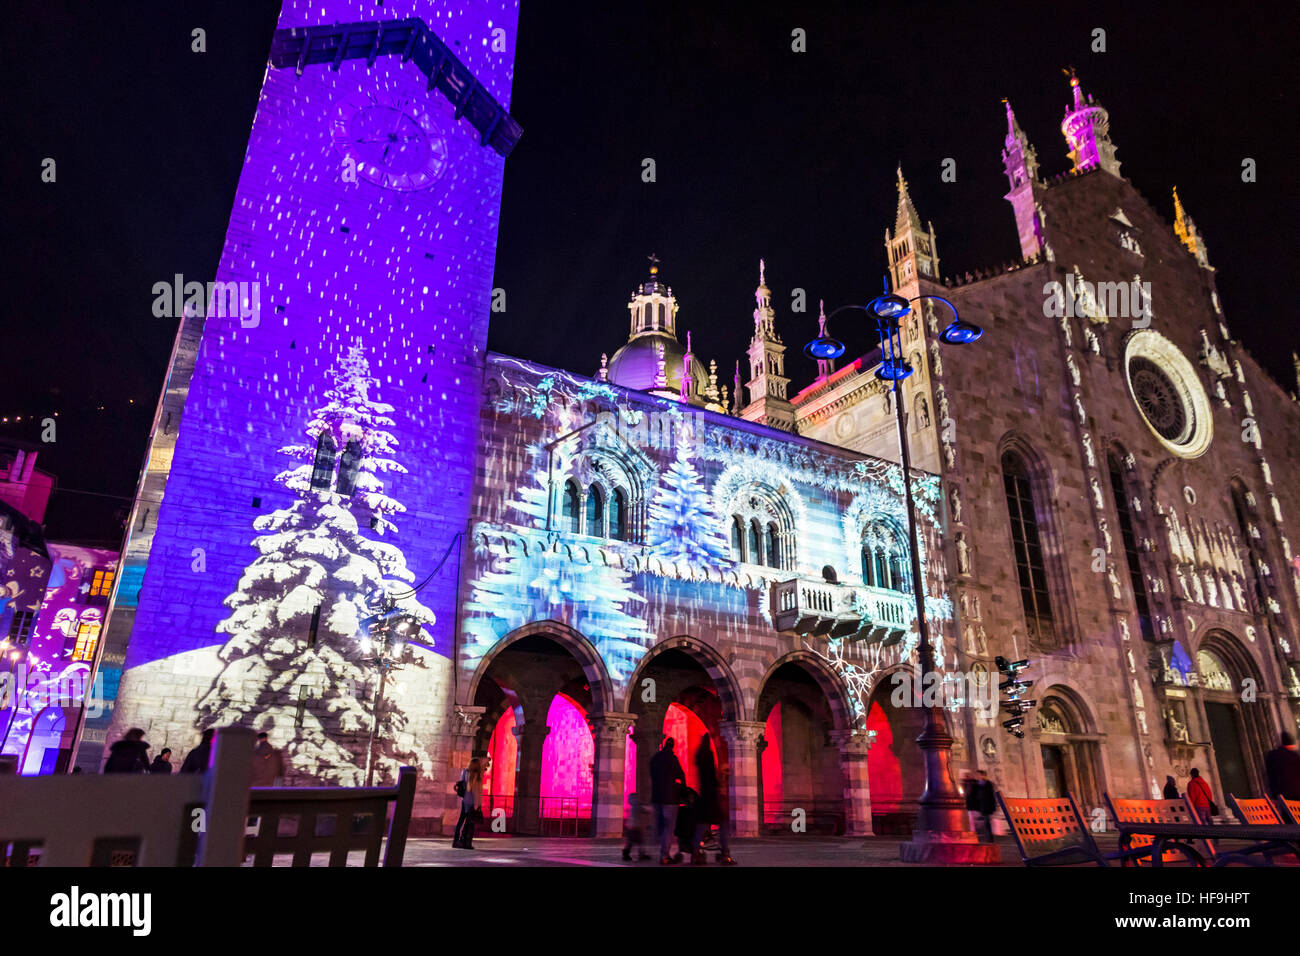 COMO, ITALY - DECEMBER 2, 2016: Festive Christmas decorations lights on facades of buildings on Piazza Duomo (Cathedral - Stock Image